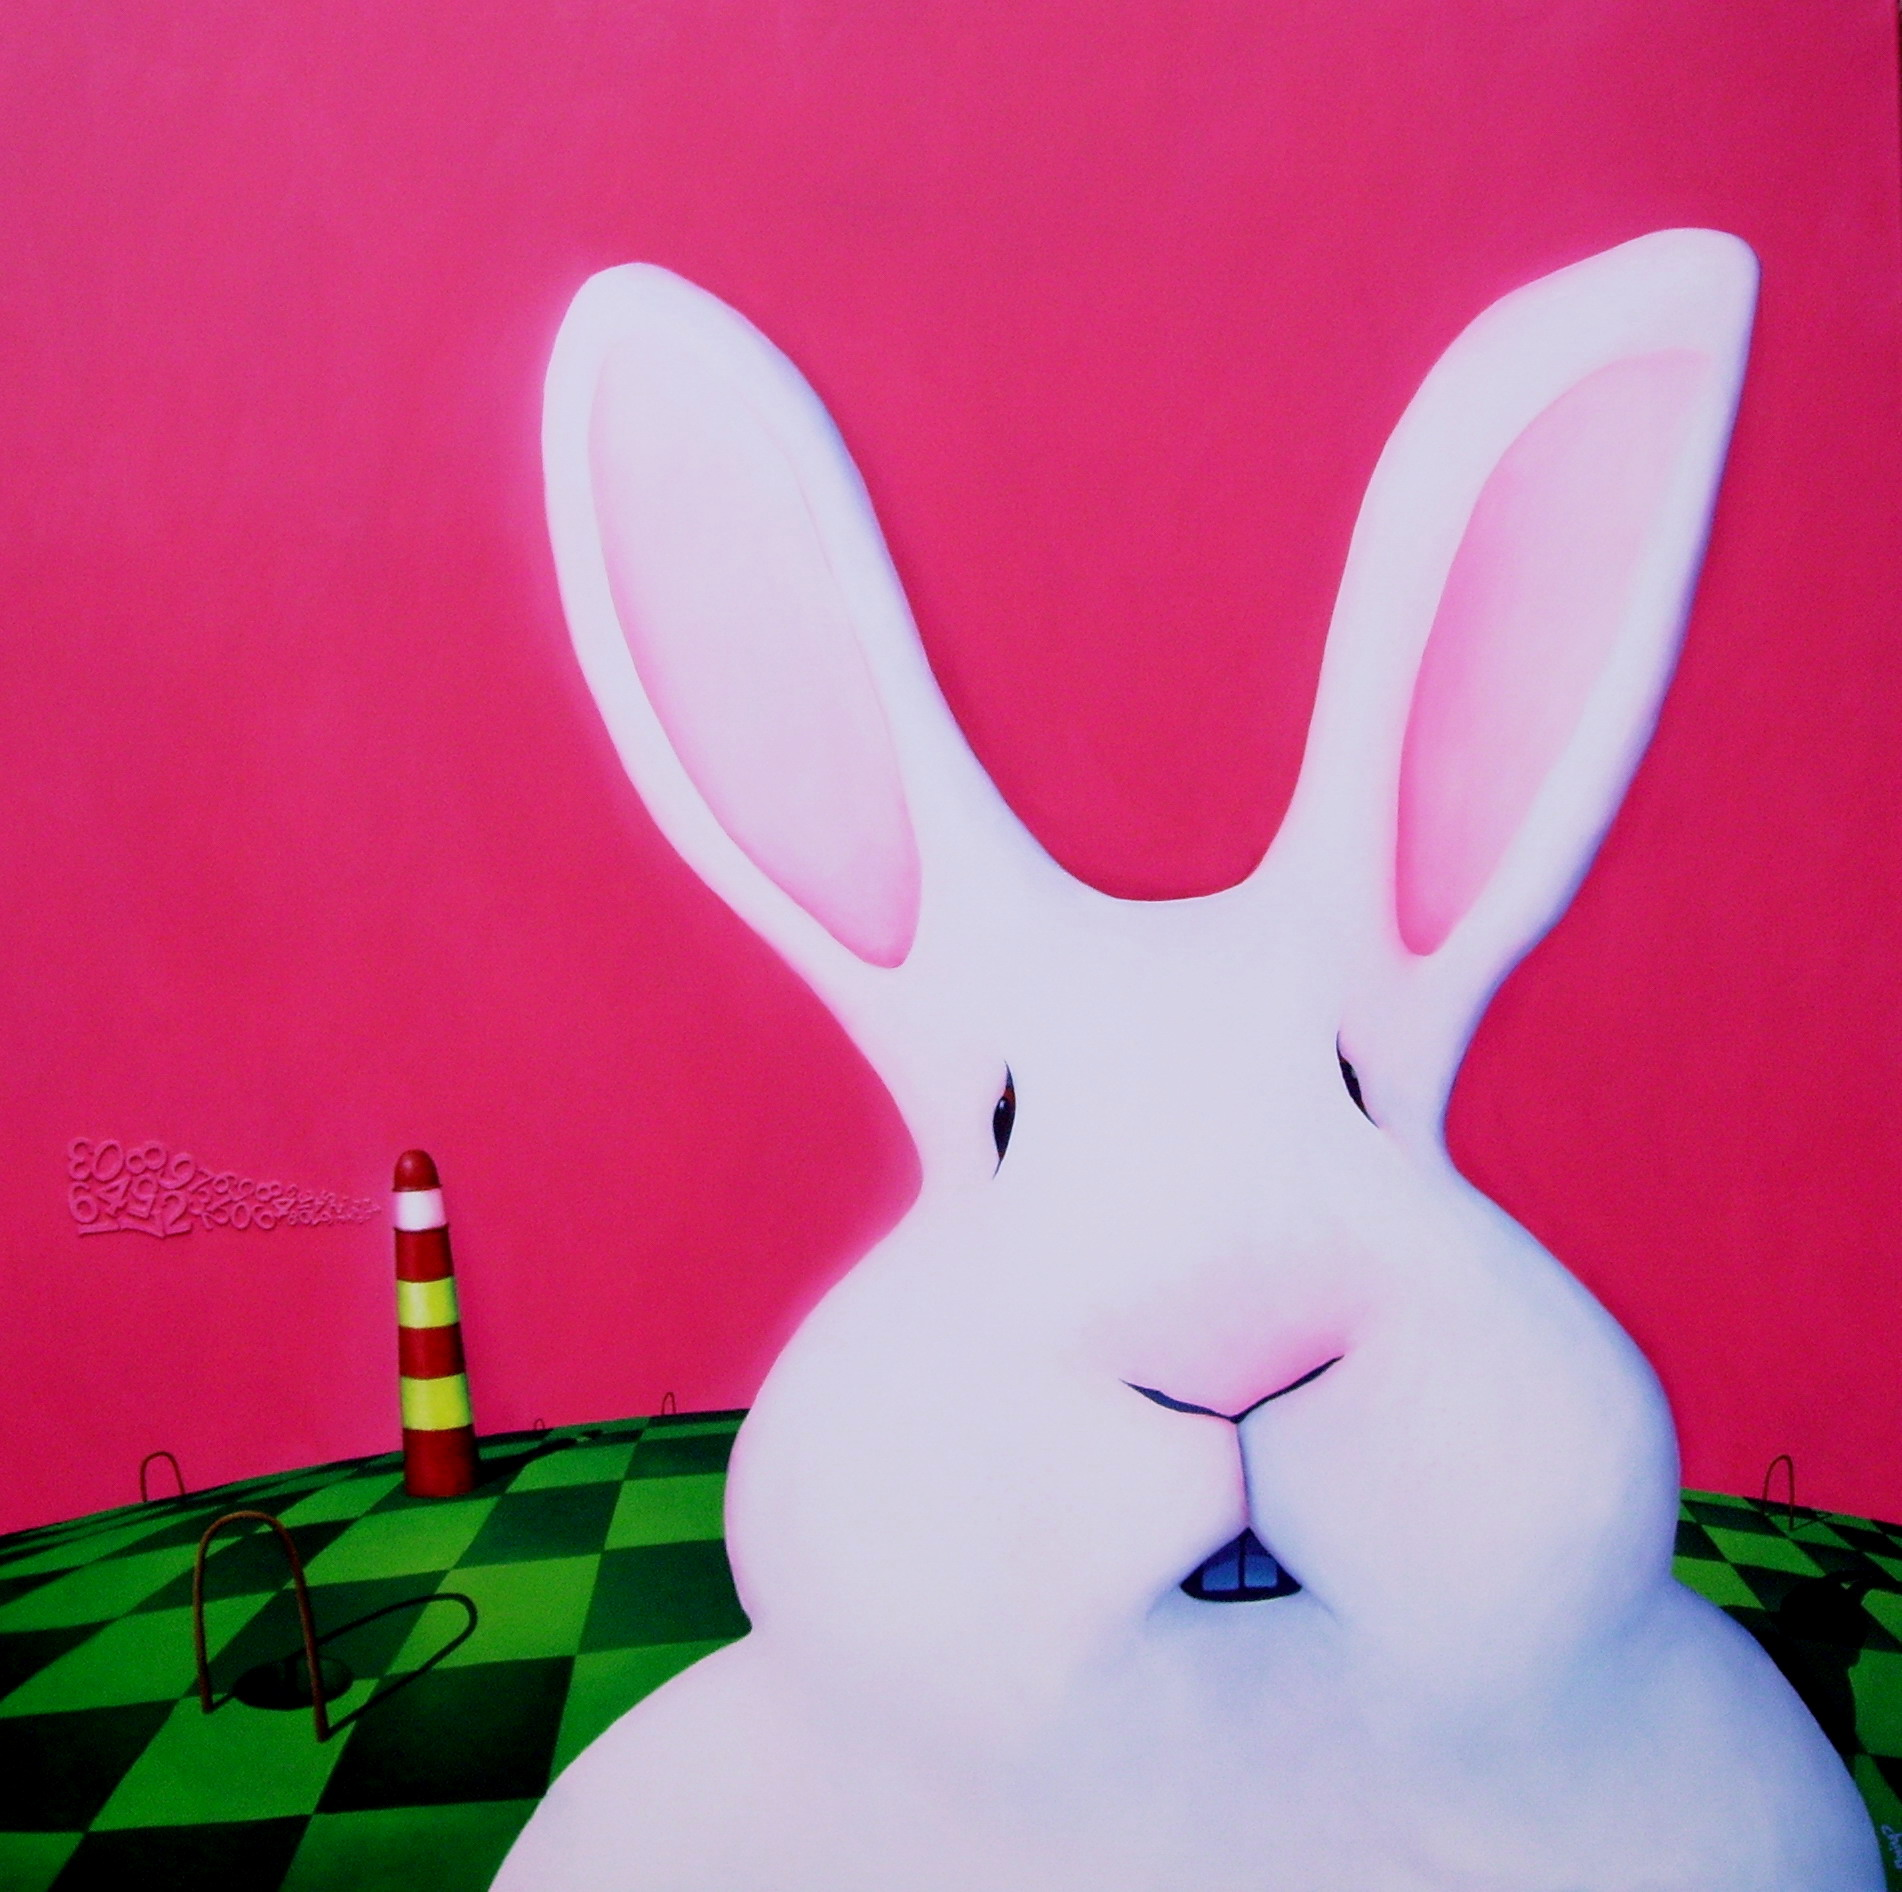 Run Rabbit Run- Técnica mixta sobre tela- 150 x 150 cm.- 2012.